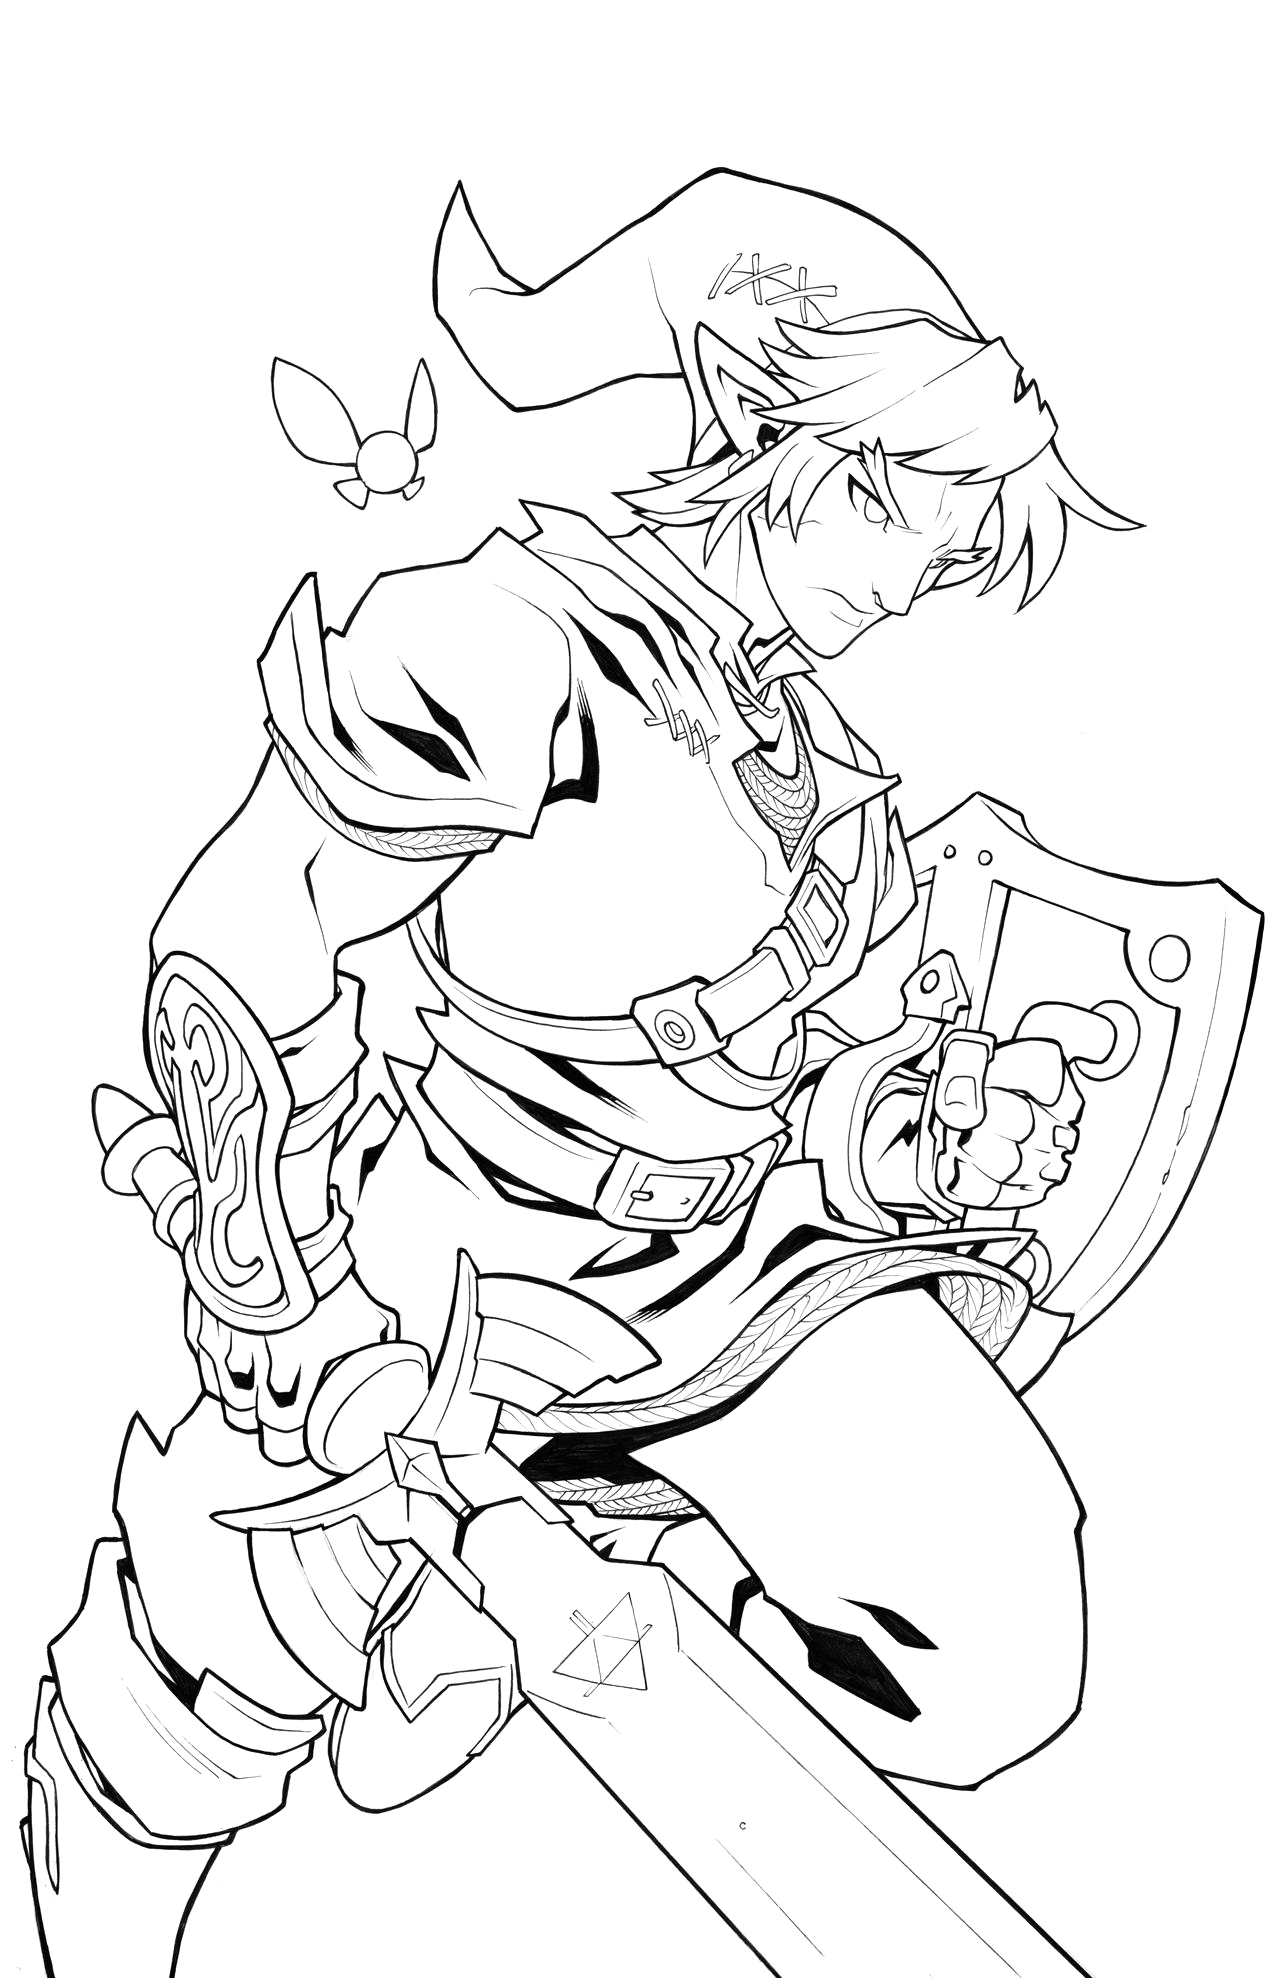 Legend Of Zelda Breath Of the Wild Printable Coloring Pages Zelda Breath the Wild Pages Coloring Pages